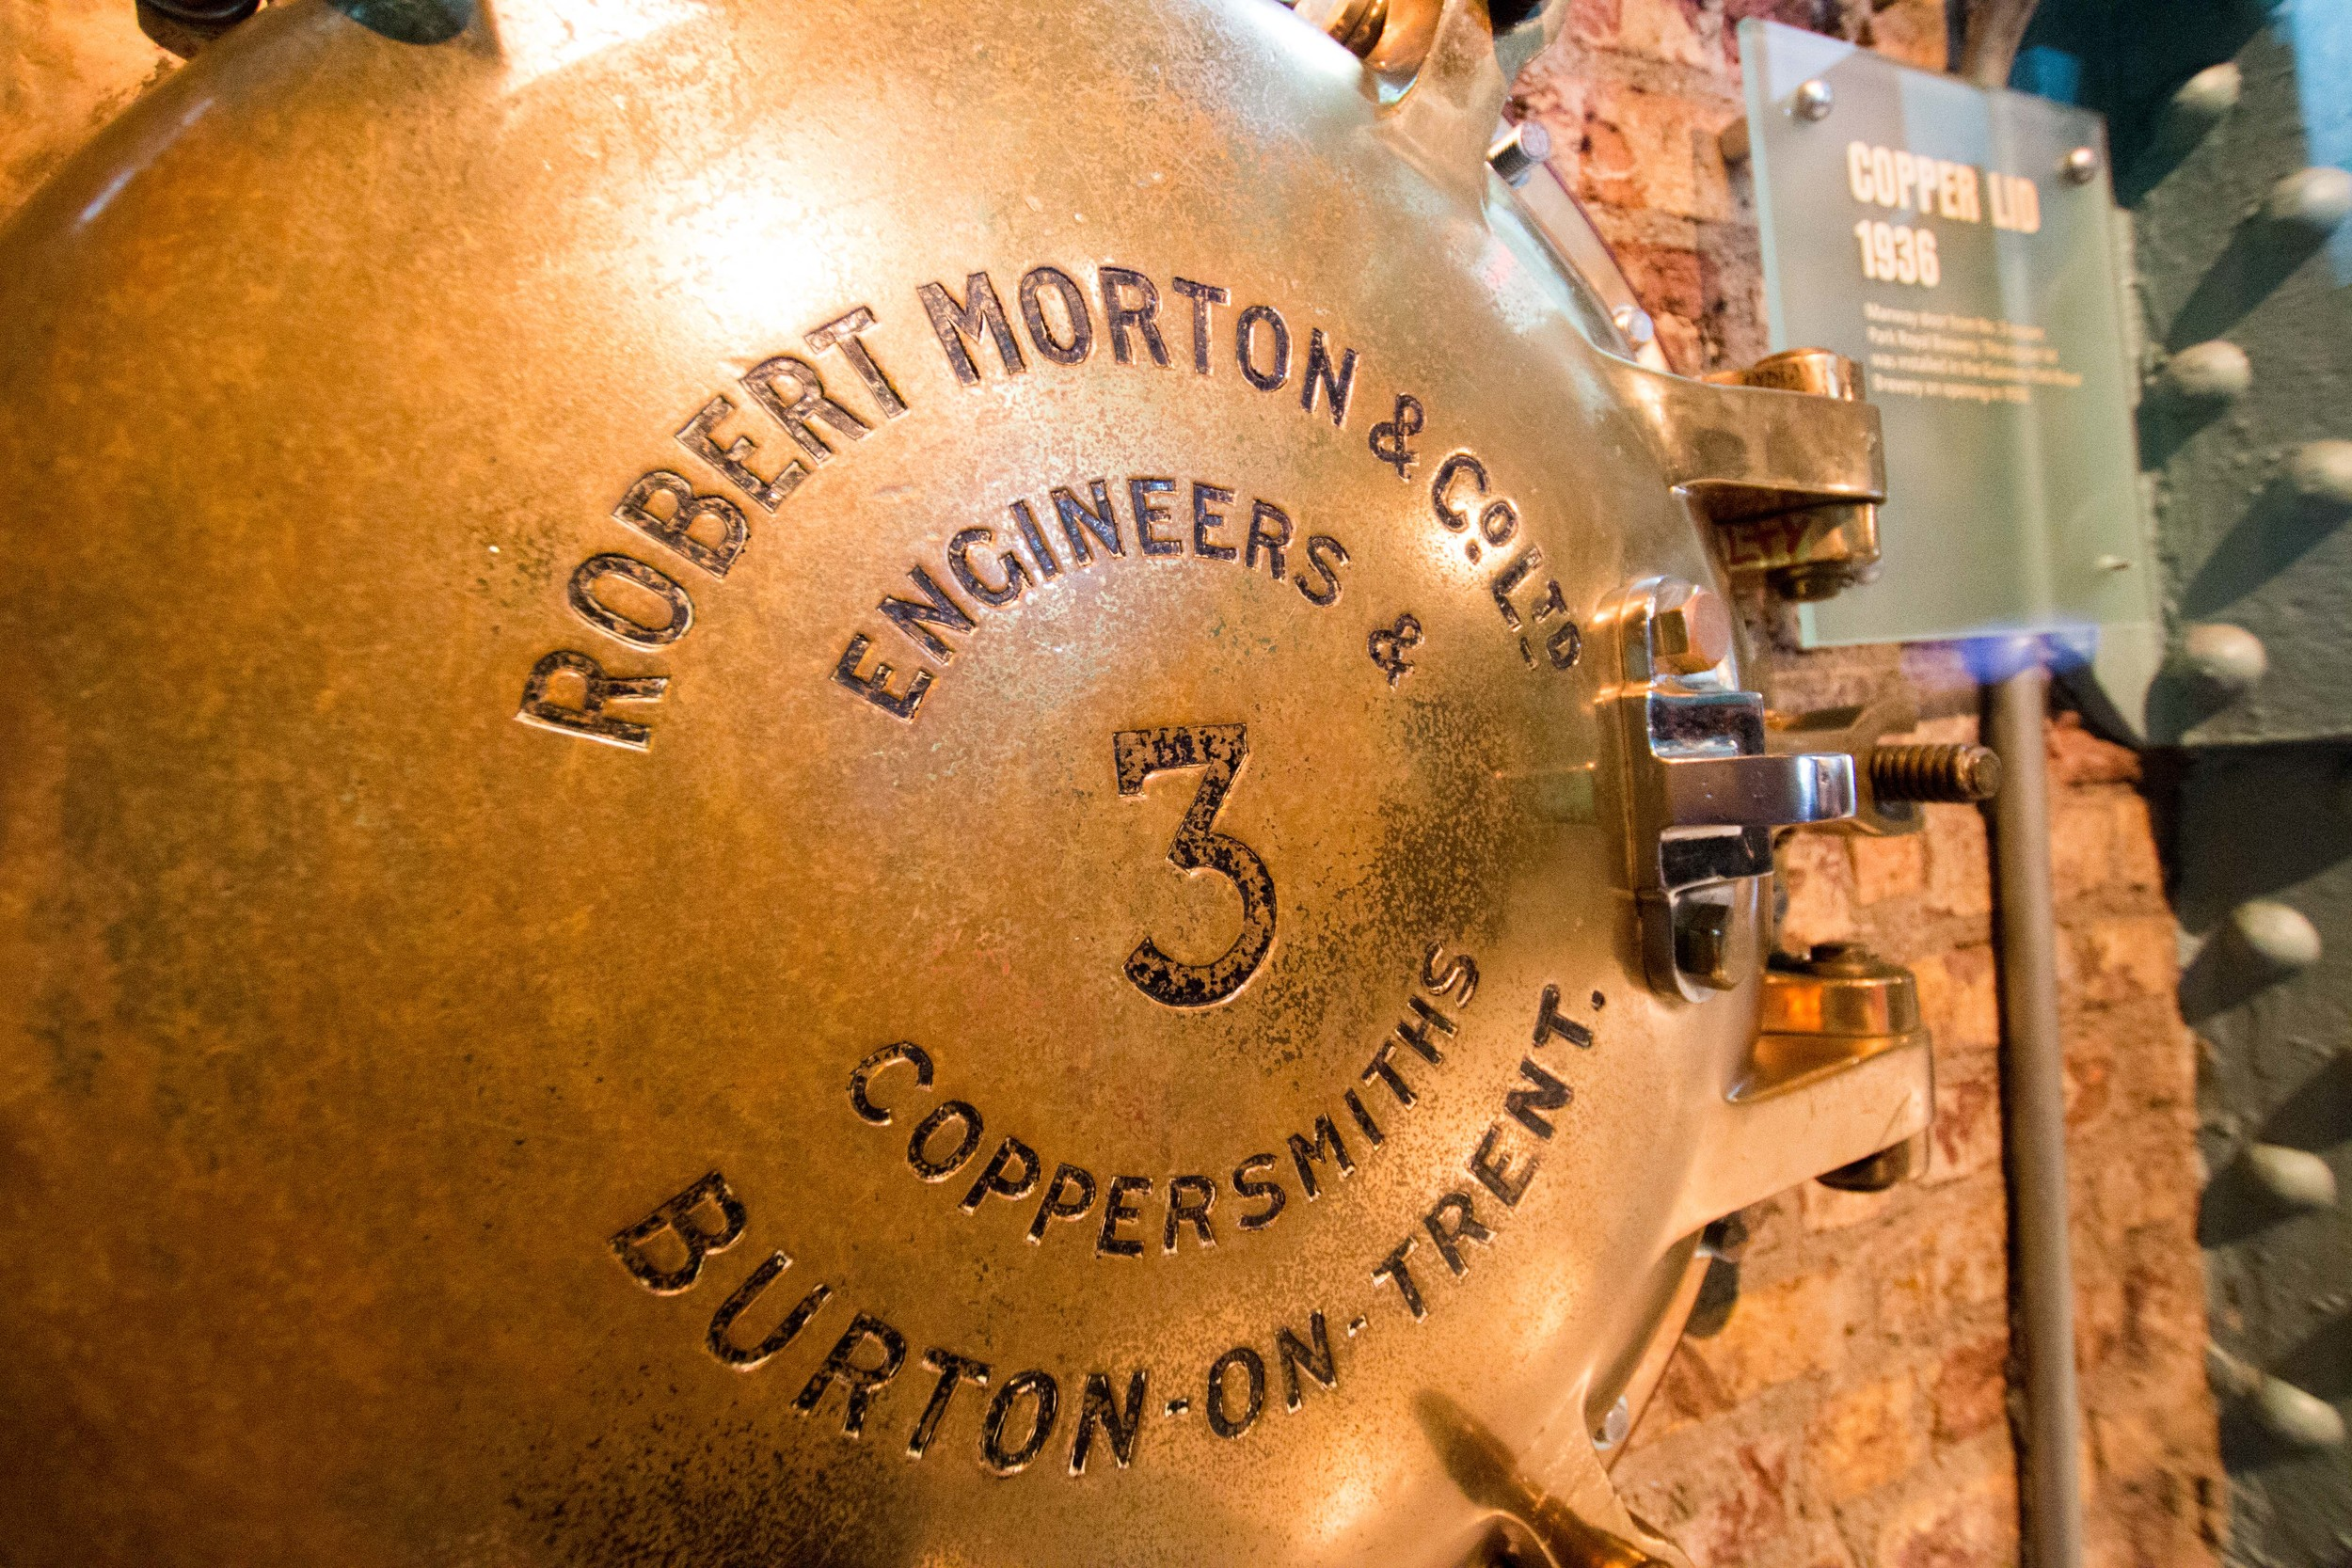 Neat machinery from the Guinness Brewery